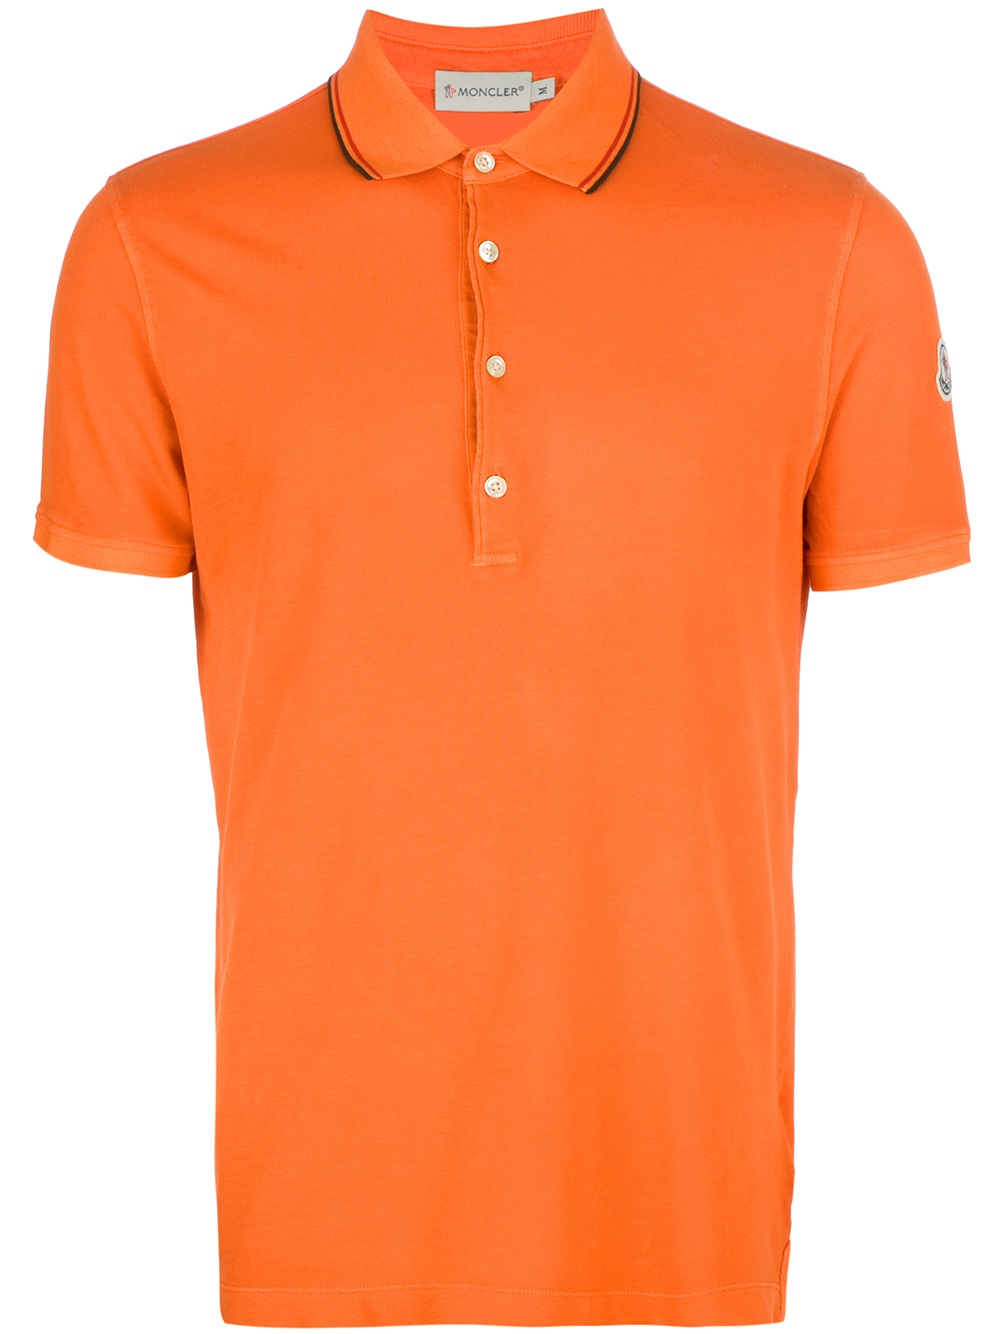 Moncler fitted polo shirt in orange for men lyst for Orange polo shirt mens